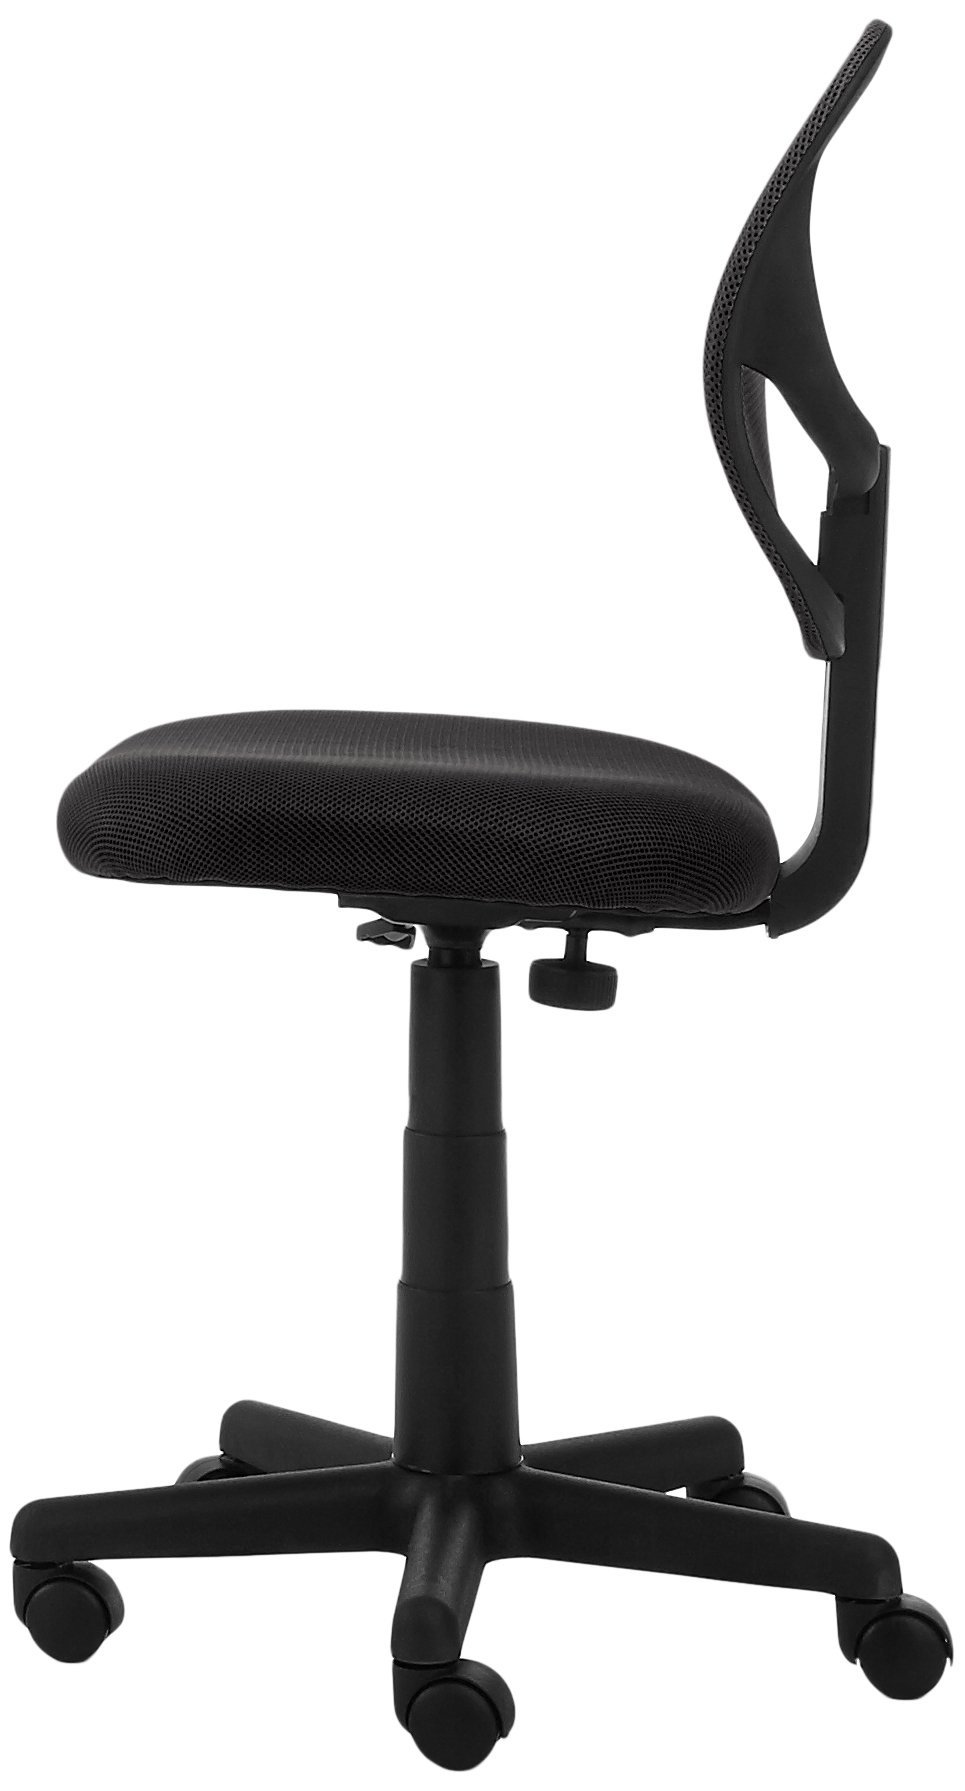 AmazonBasics Low-Back Computer Task/Desk Chair with Swivel Casters - Black by AmazonBasics (Image #5)